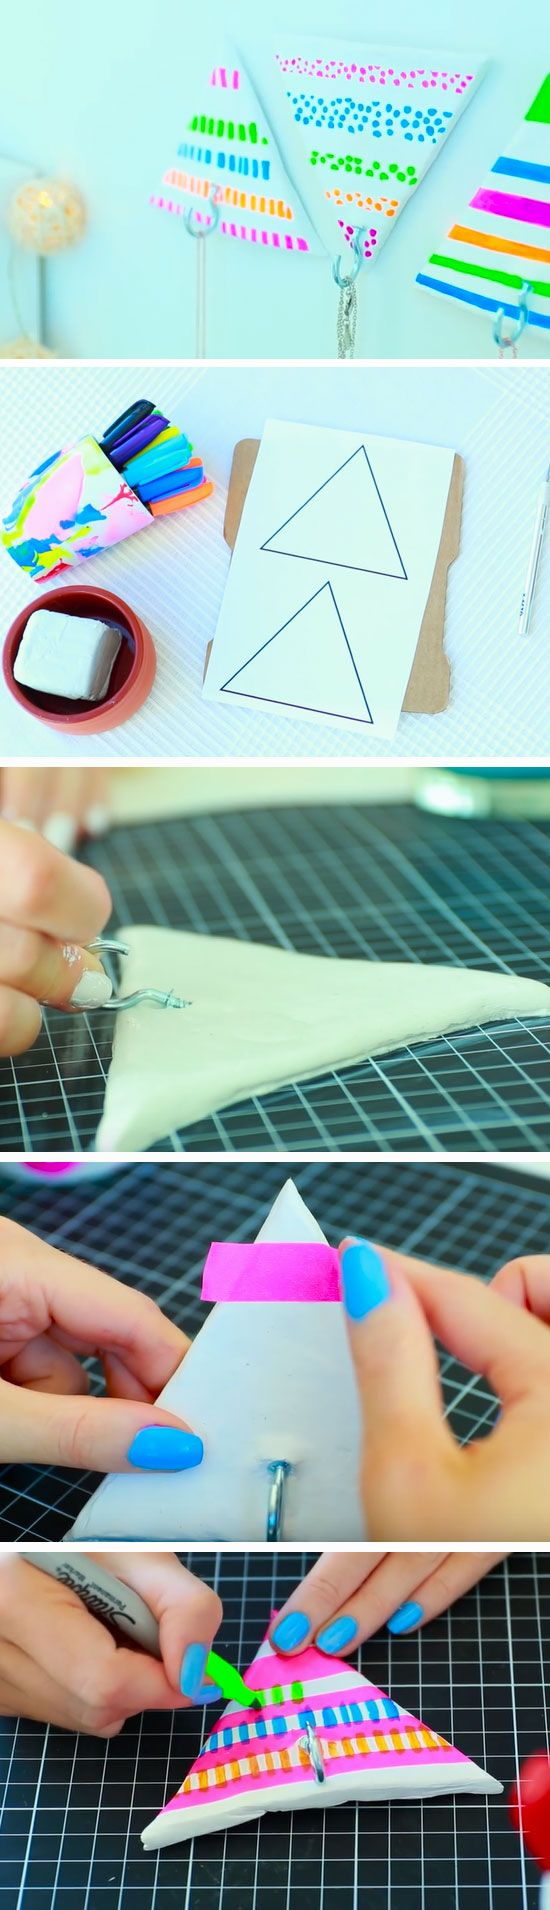 Living Room Summer Room Ideas 1000 ideas about diy summer decorations on pinterest triangle jewelry hanger 18 tumblr room decor that are insanely cute